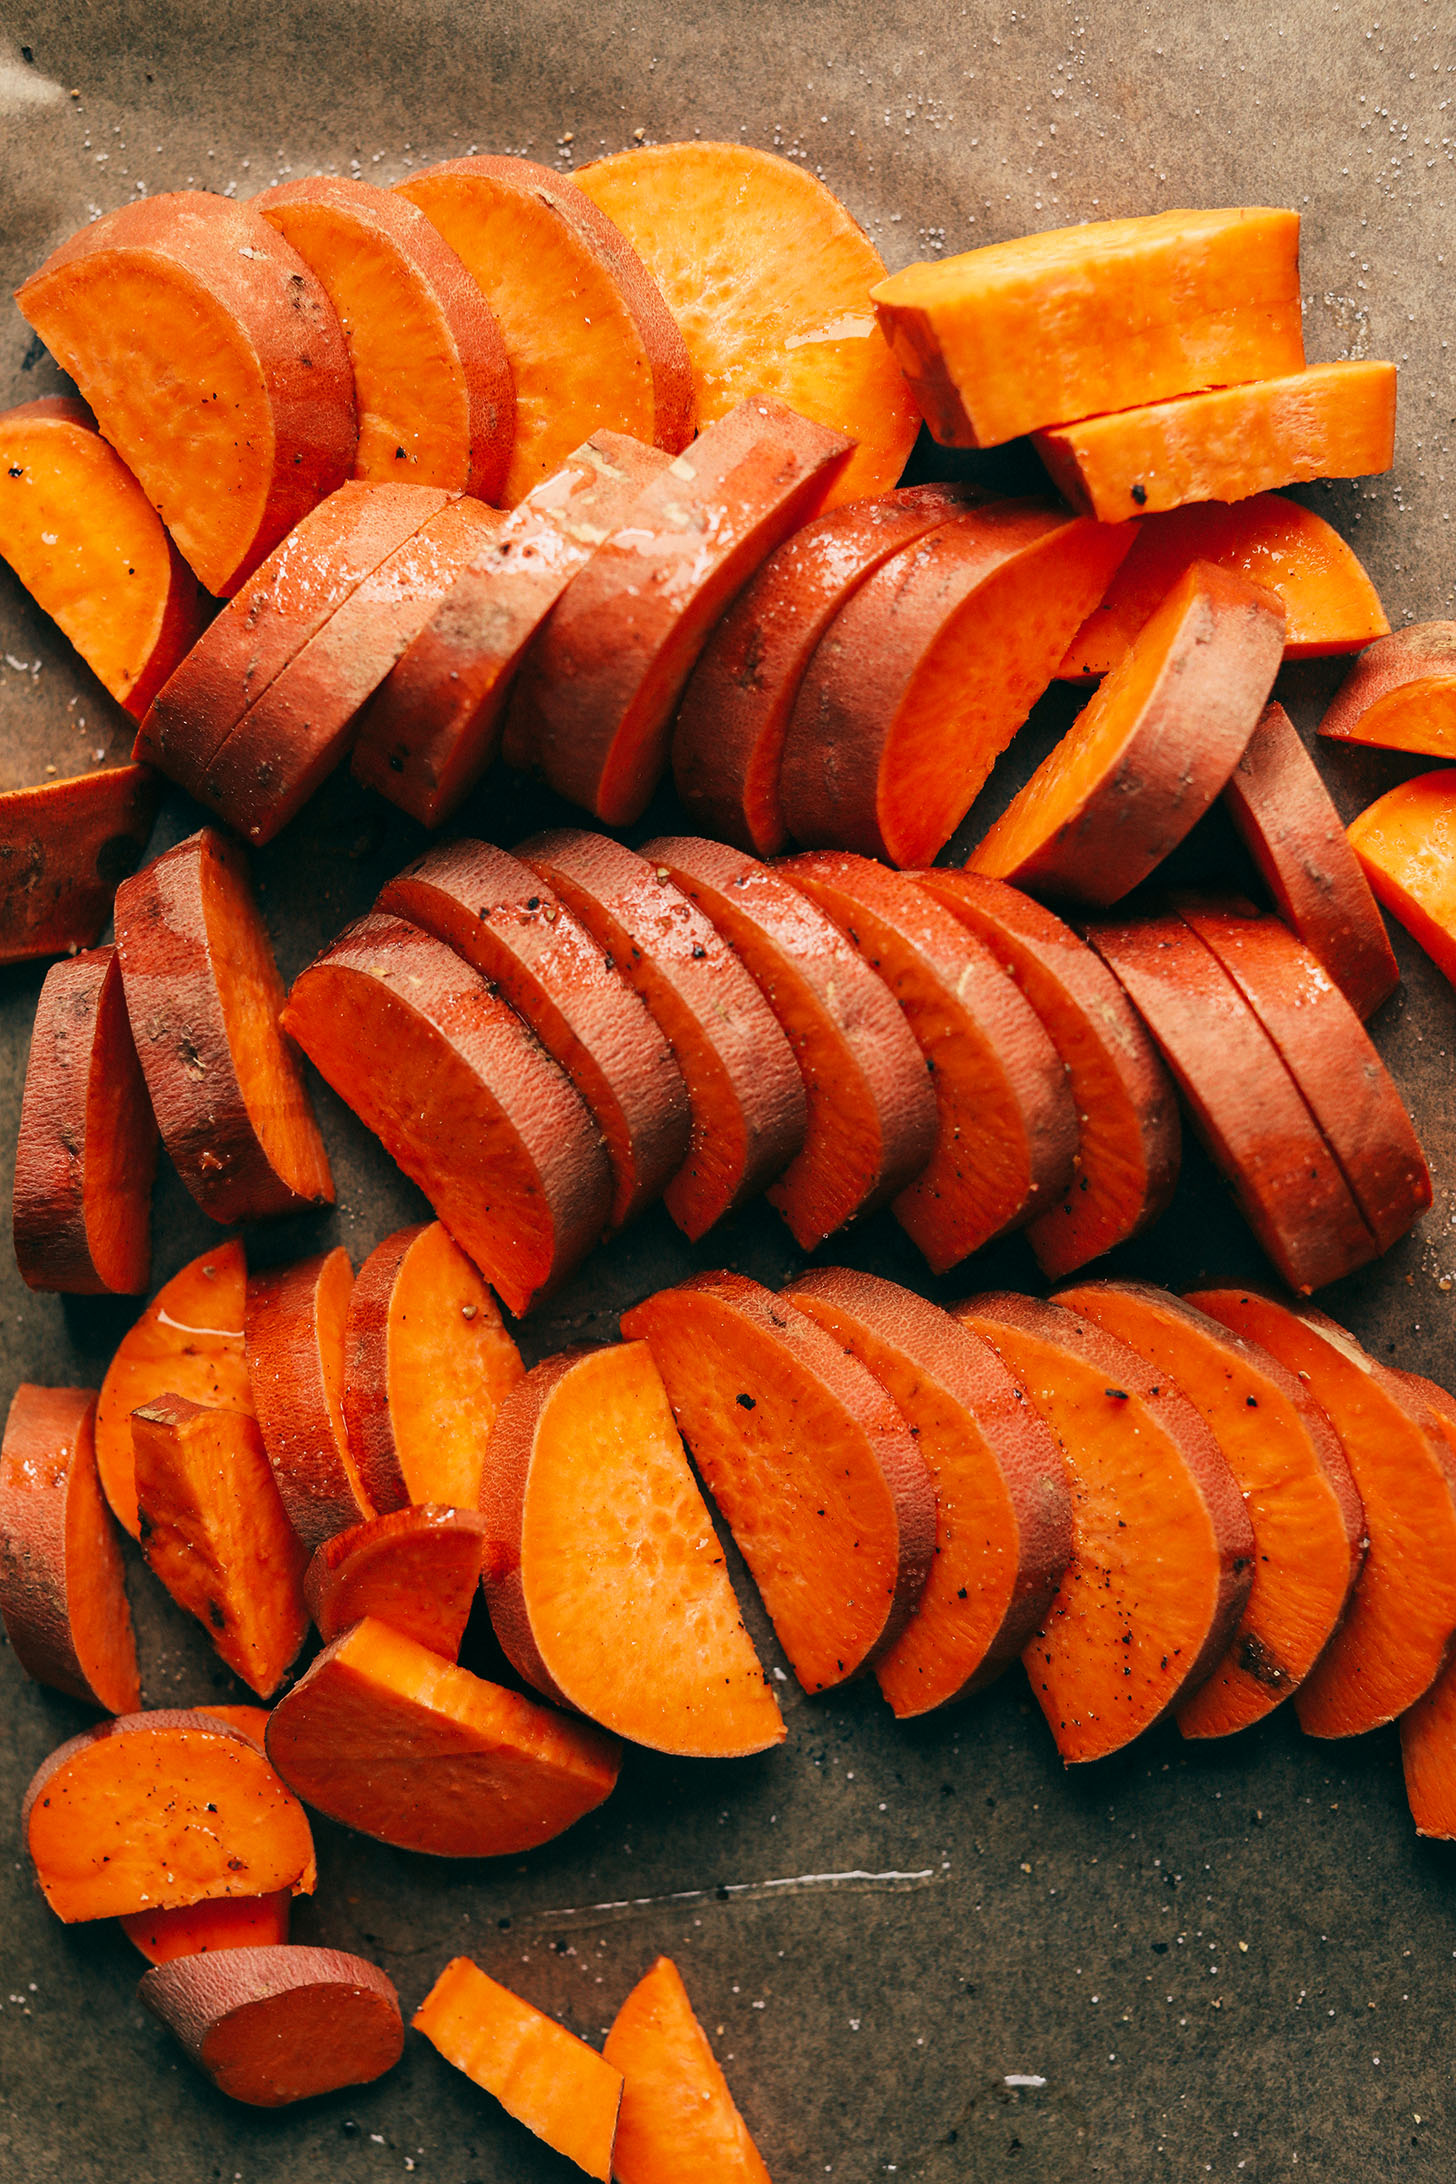 Sliced sweet potato ready for roasting and adding to this green salad